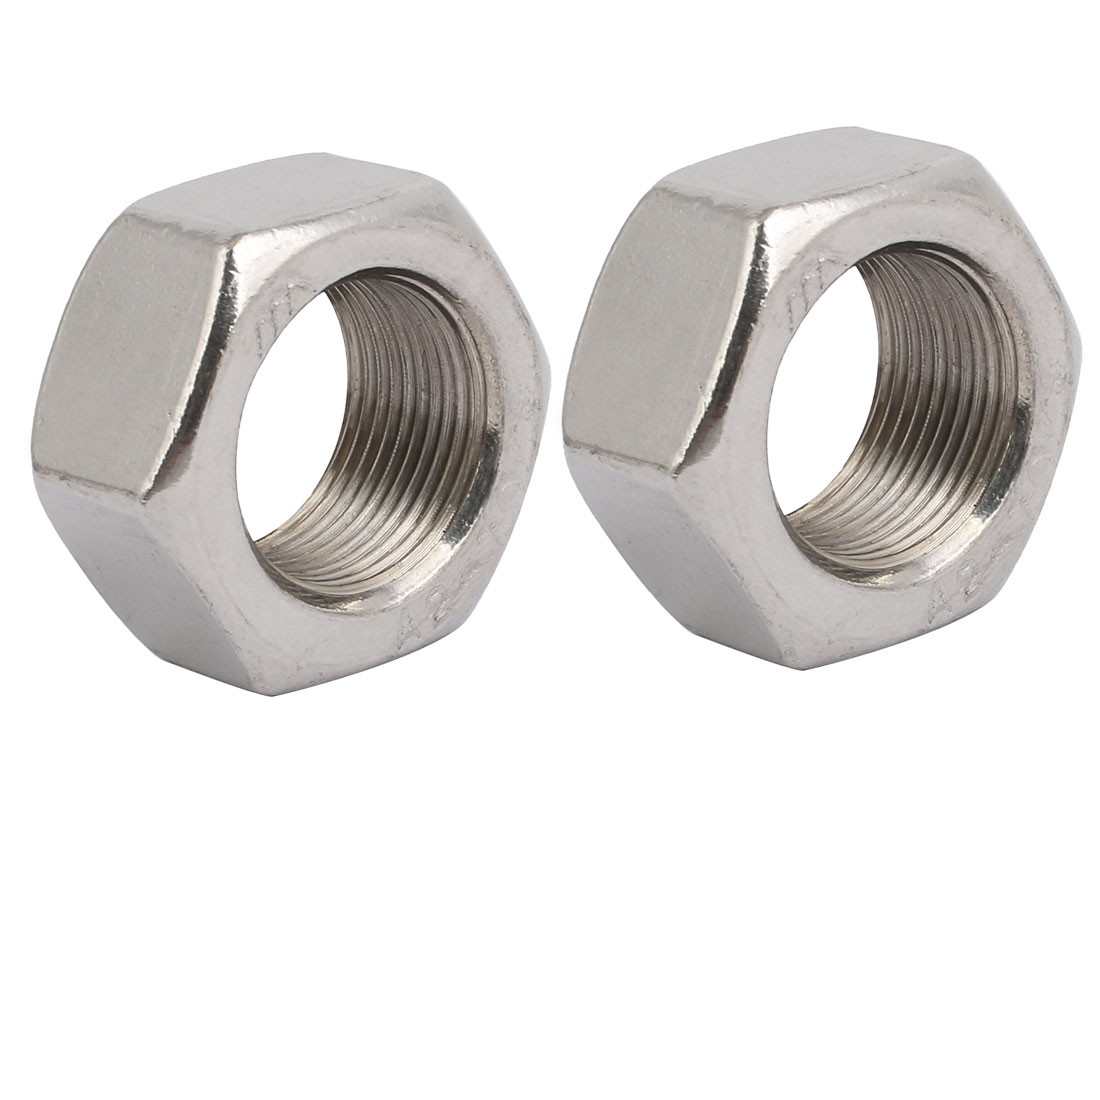 2pcs M24 x 1.5mm Pitch Metric Fine Thread 304 Stainless Steel Hex Nuts